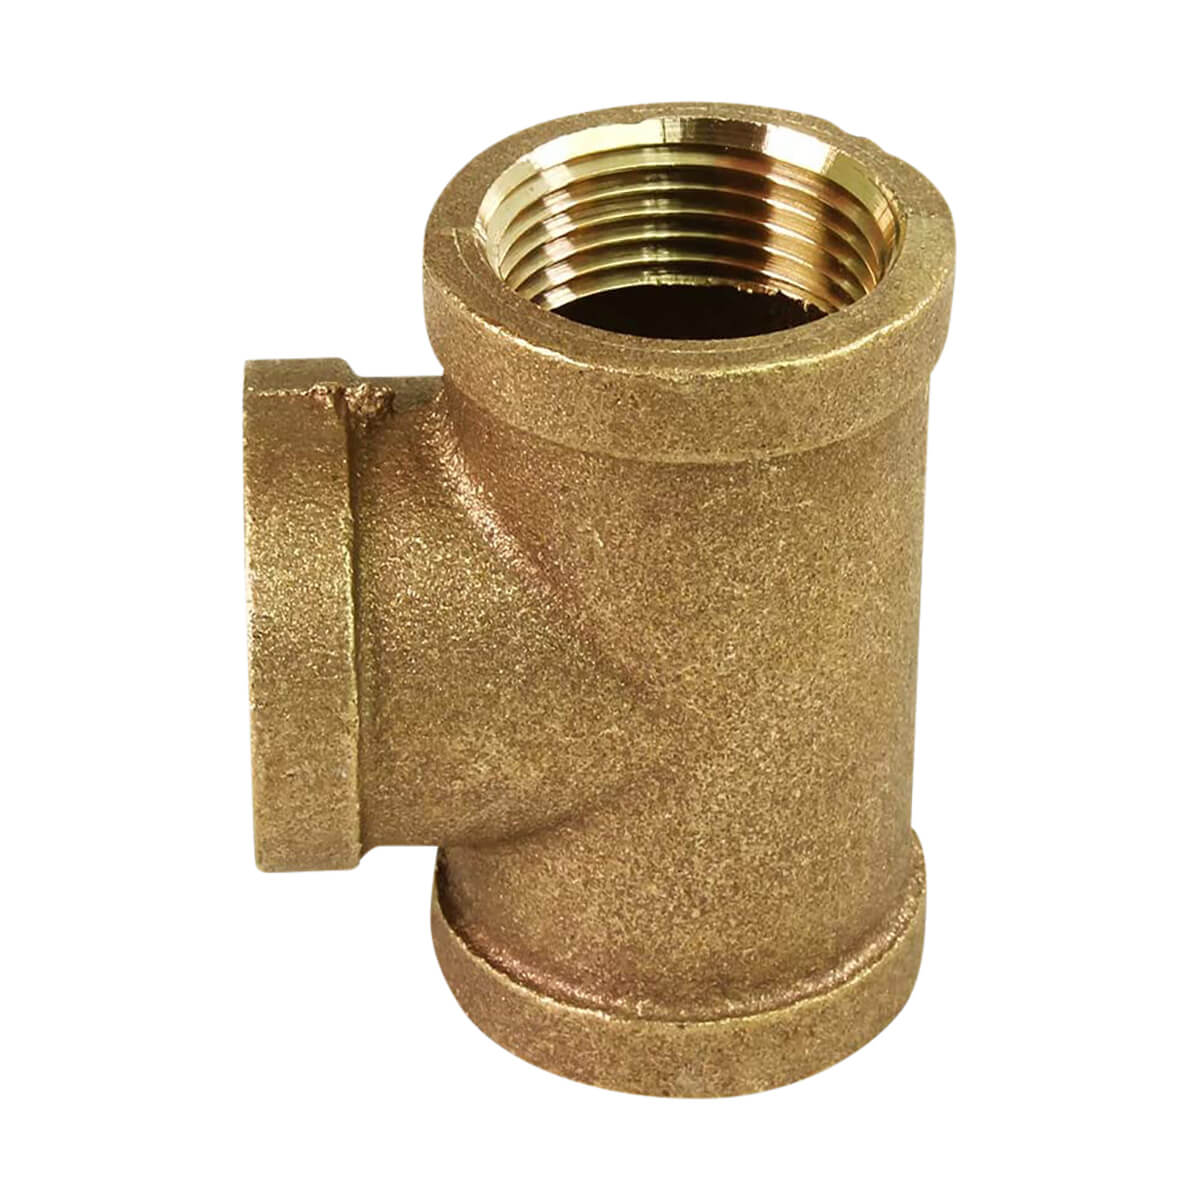 Brass Tee Coupling - 1-1/4-in